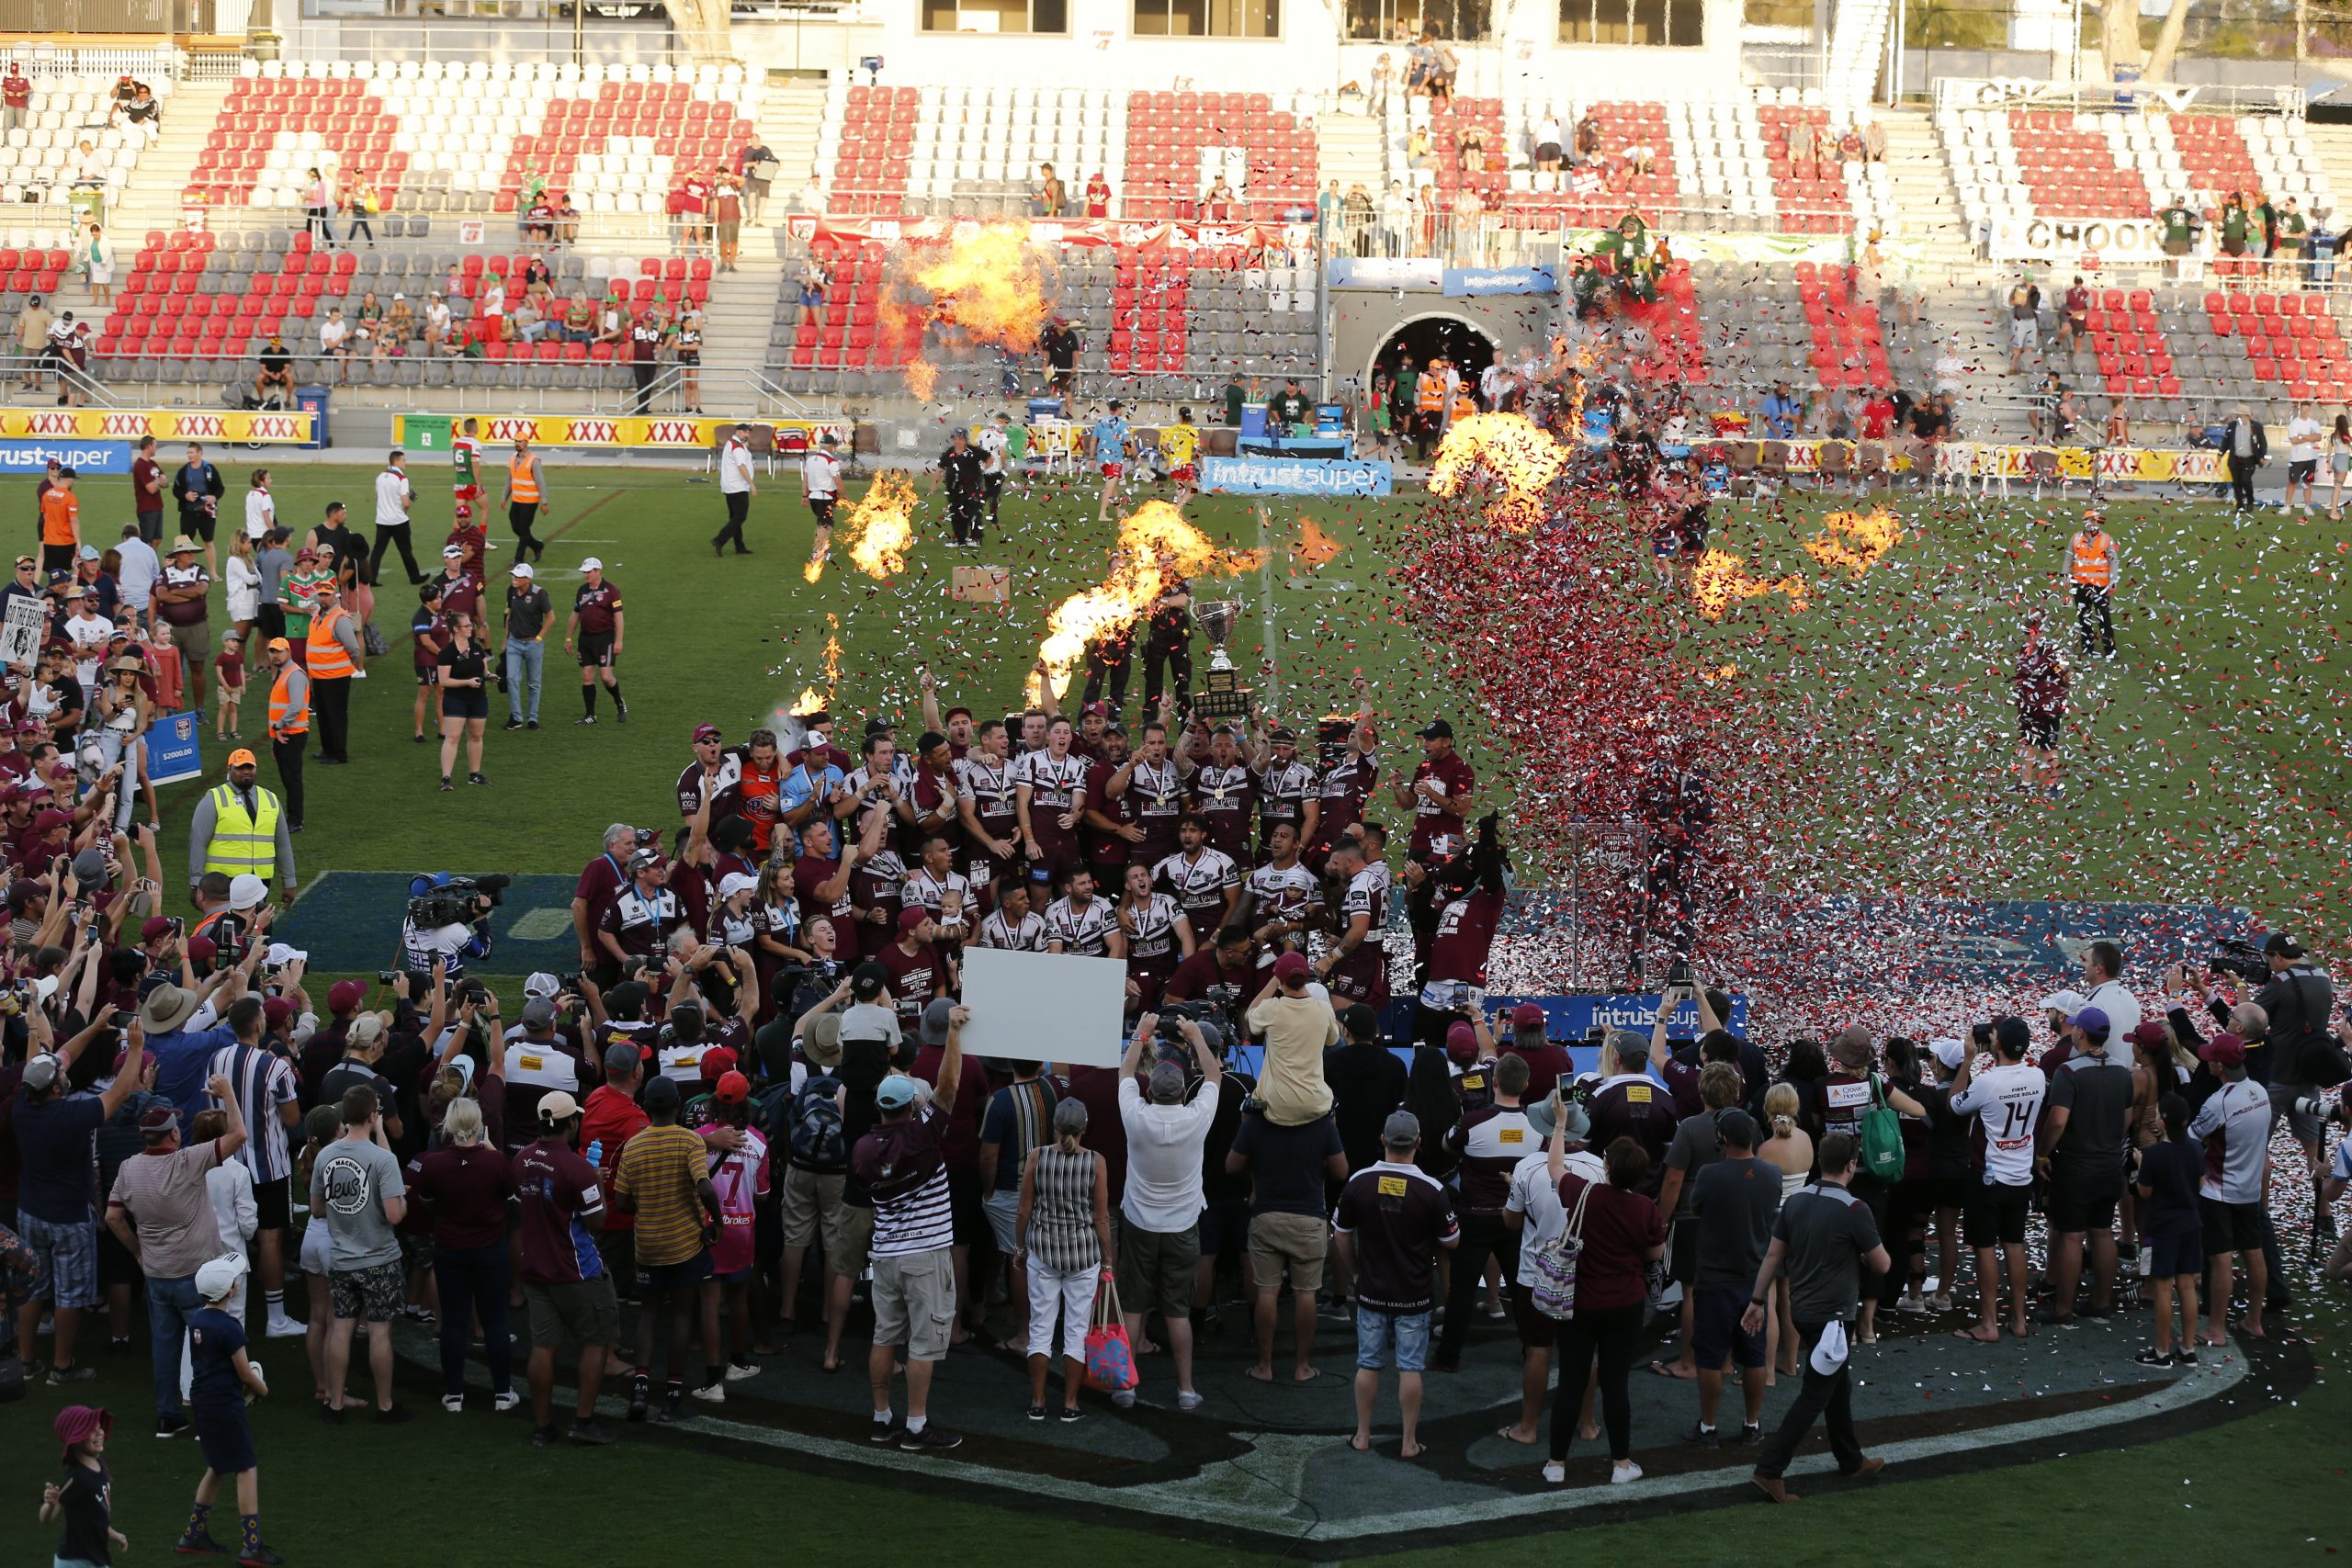 Redcliffe to host 2021 Intrust Super Cup Grand Final Day